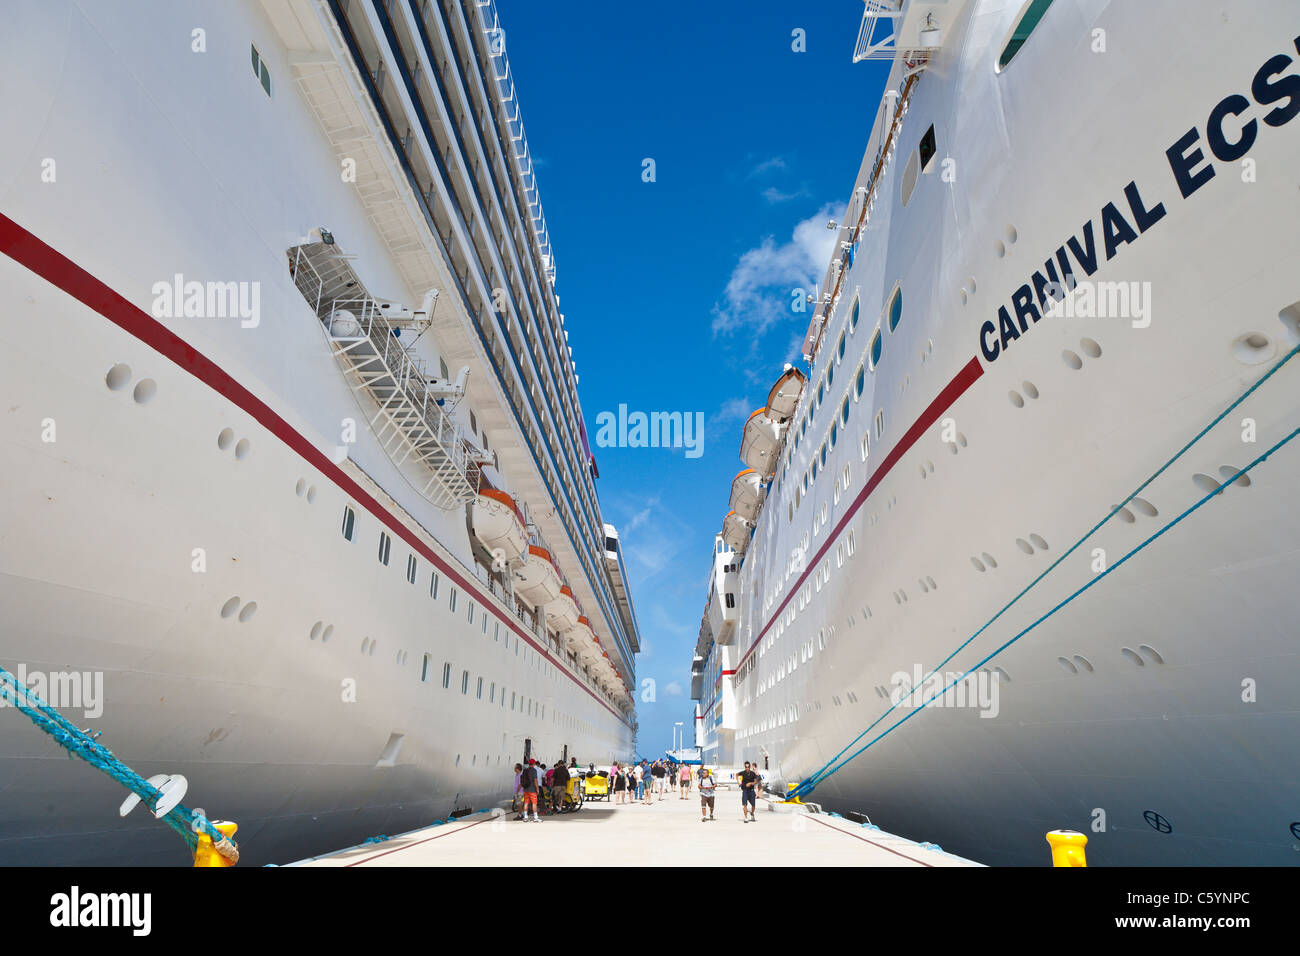 Cruise ship passengers on pier near Carnival cruise ships Triumph and Ecstasy in Cozumel, Mexico in the Caribbean - Stock Image